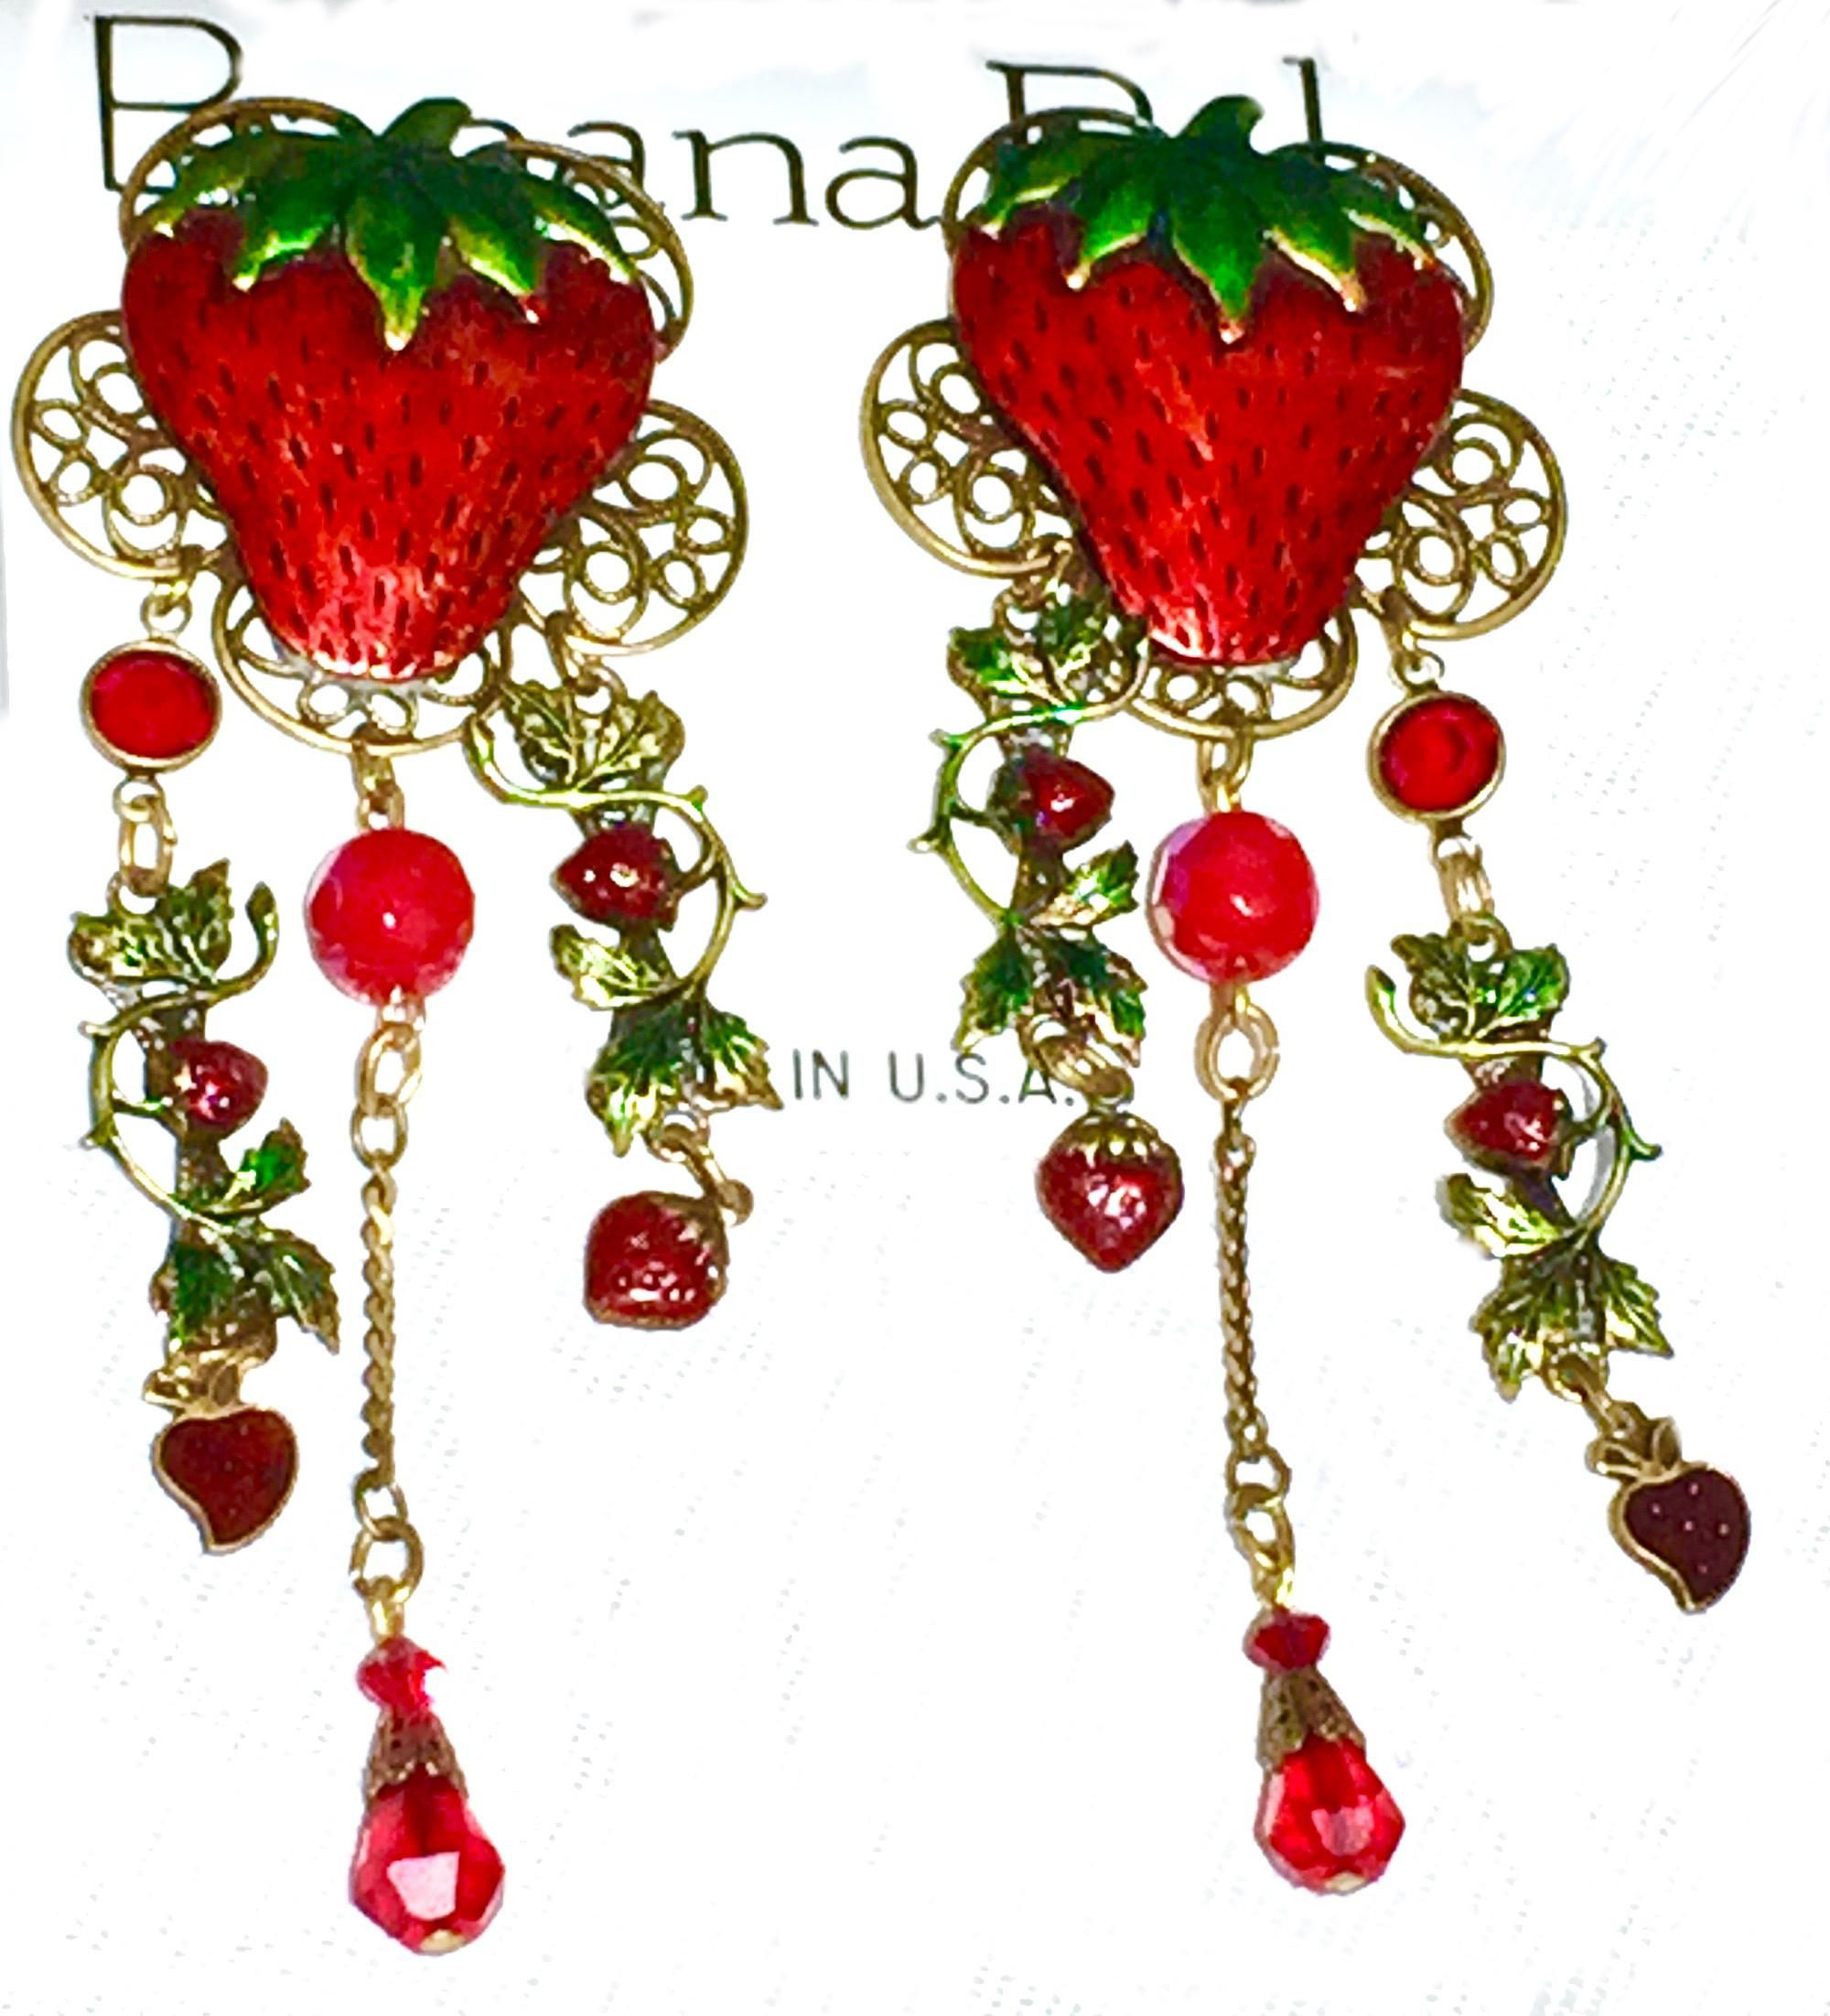 STRAWBERRY crystal CUTE EARRINGS red//green SPARKLY RHINESTONE gold//silver tone